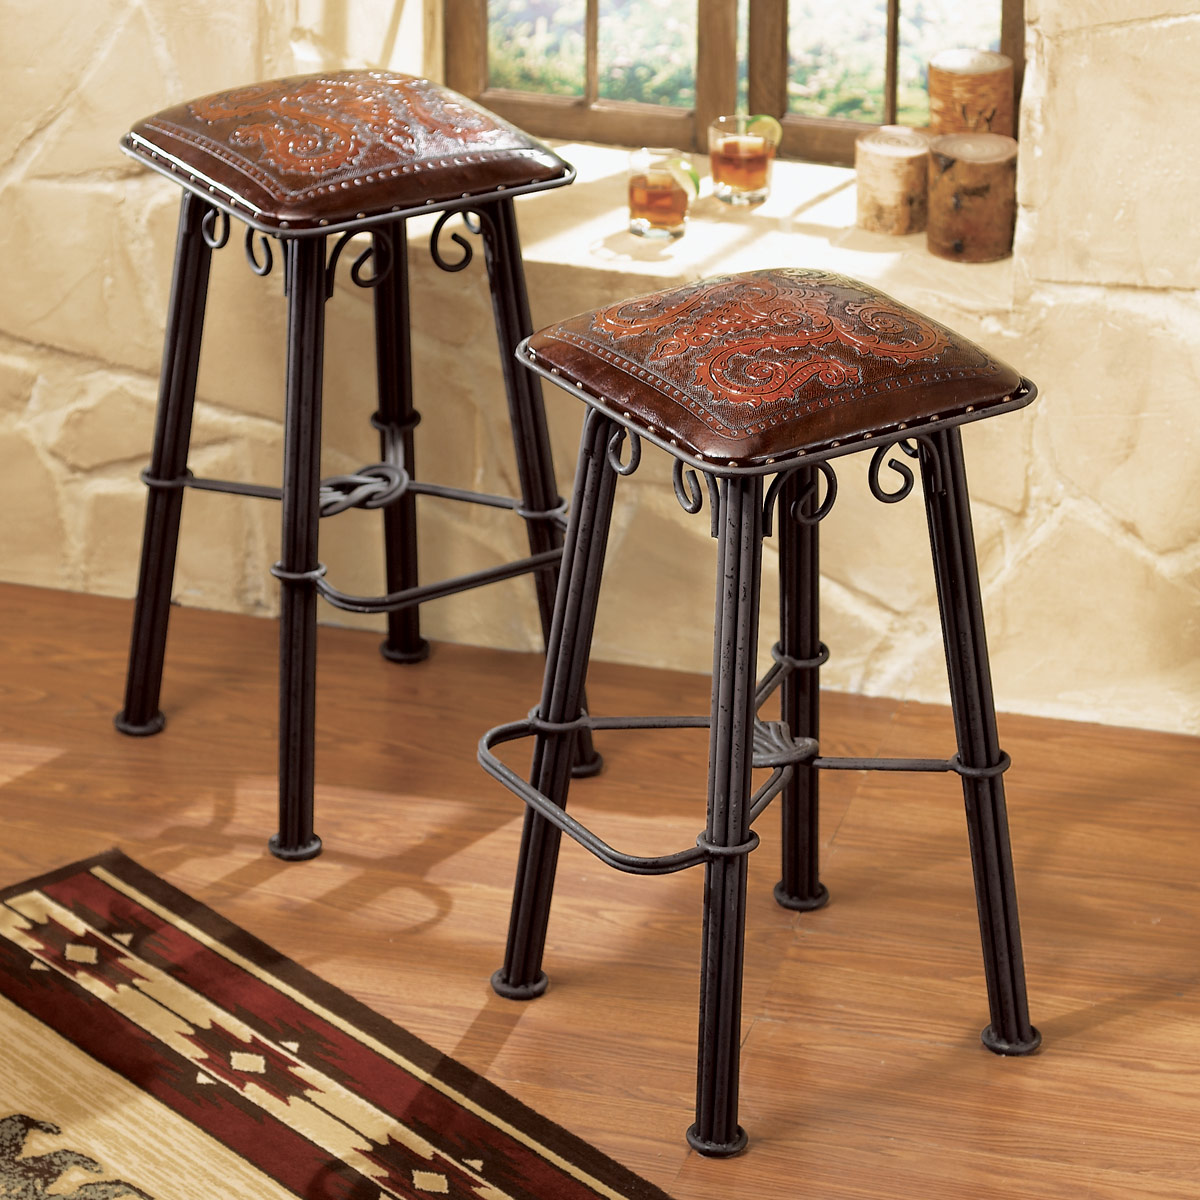 Iron Counter Stool Tooled Leather Seat - Set of 2